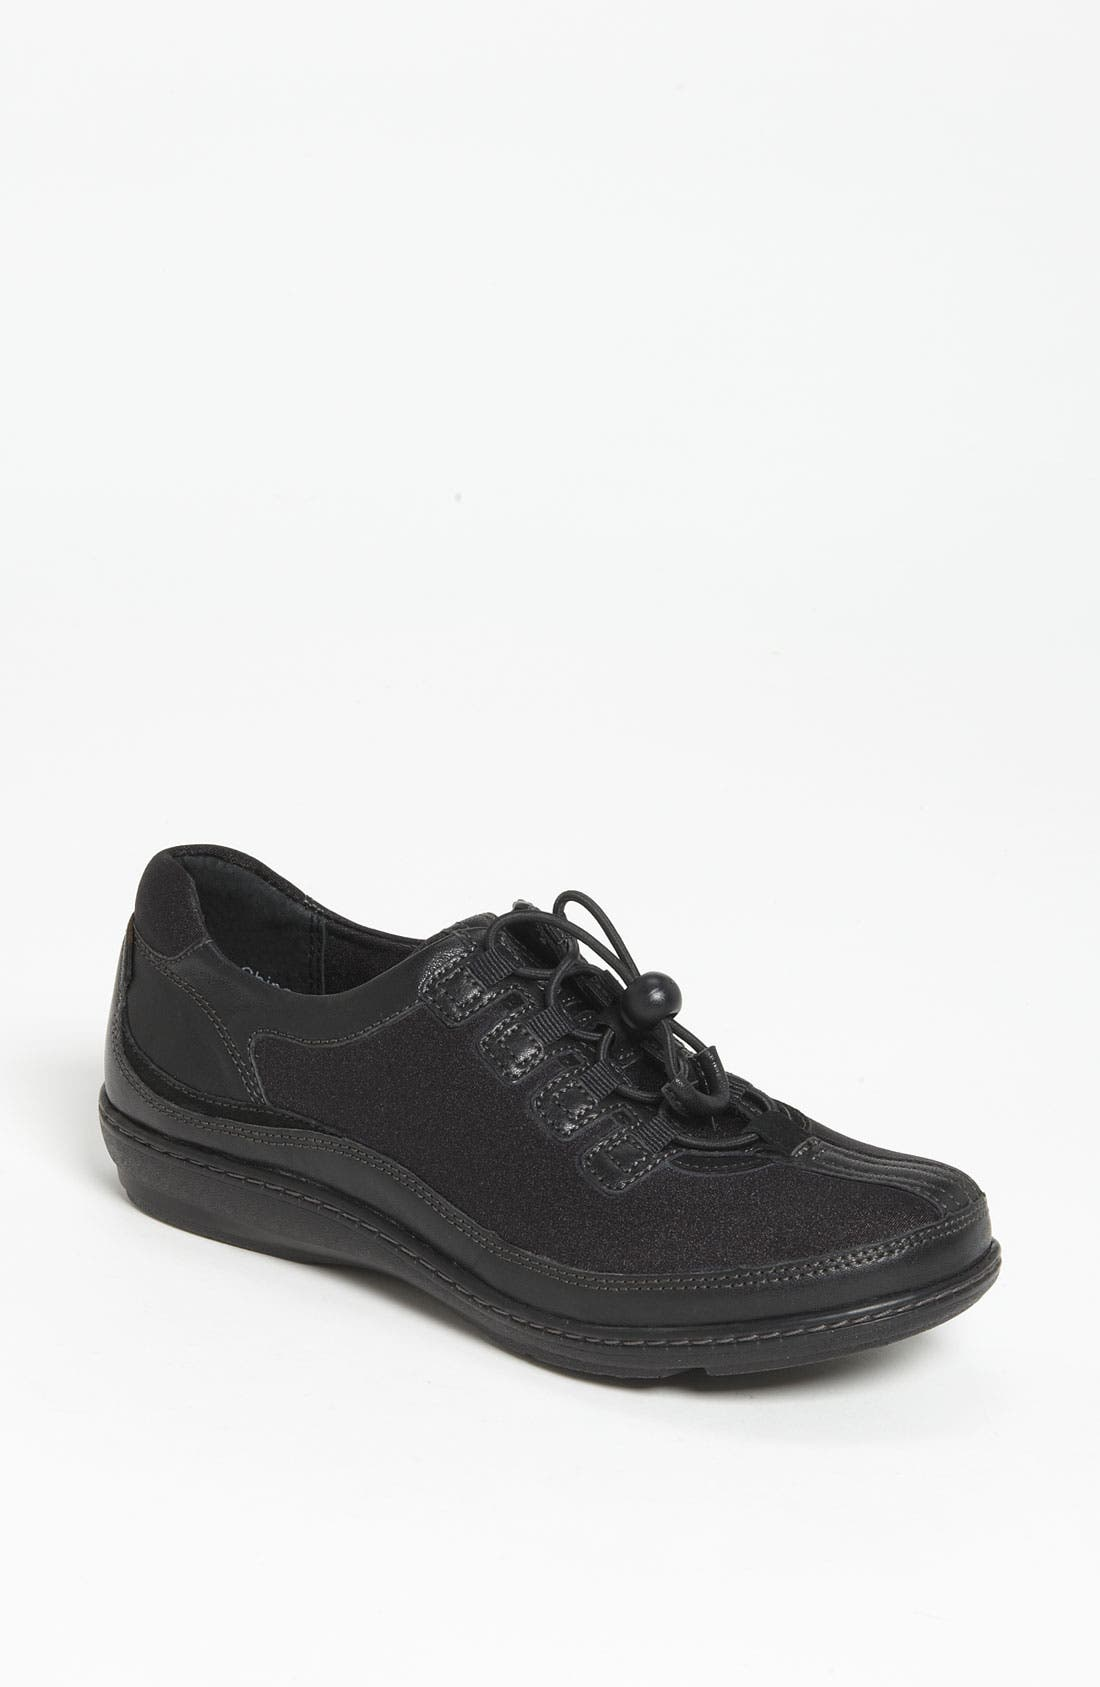 Main Image - Aetrex 'Bungee' Oxford